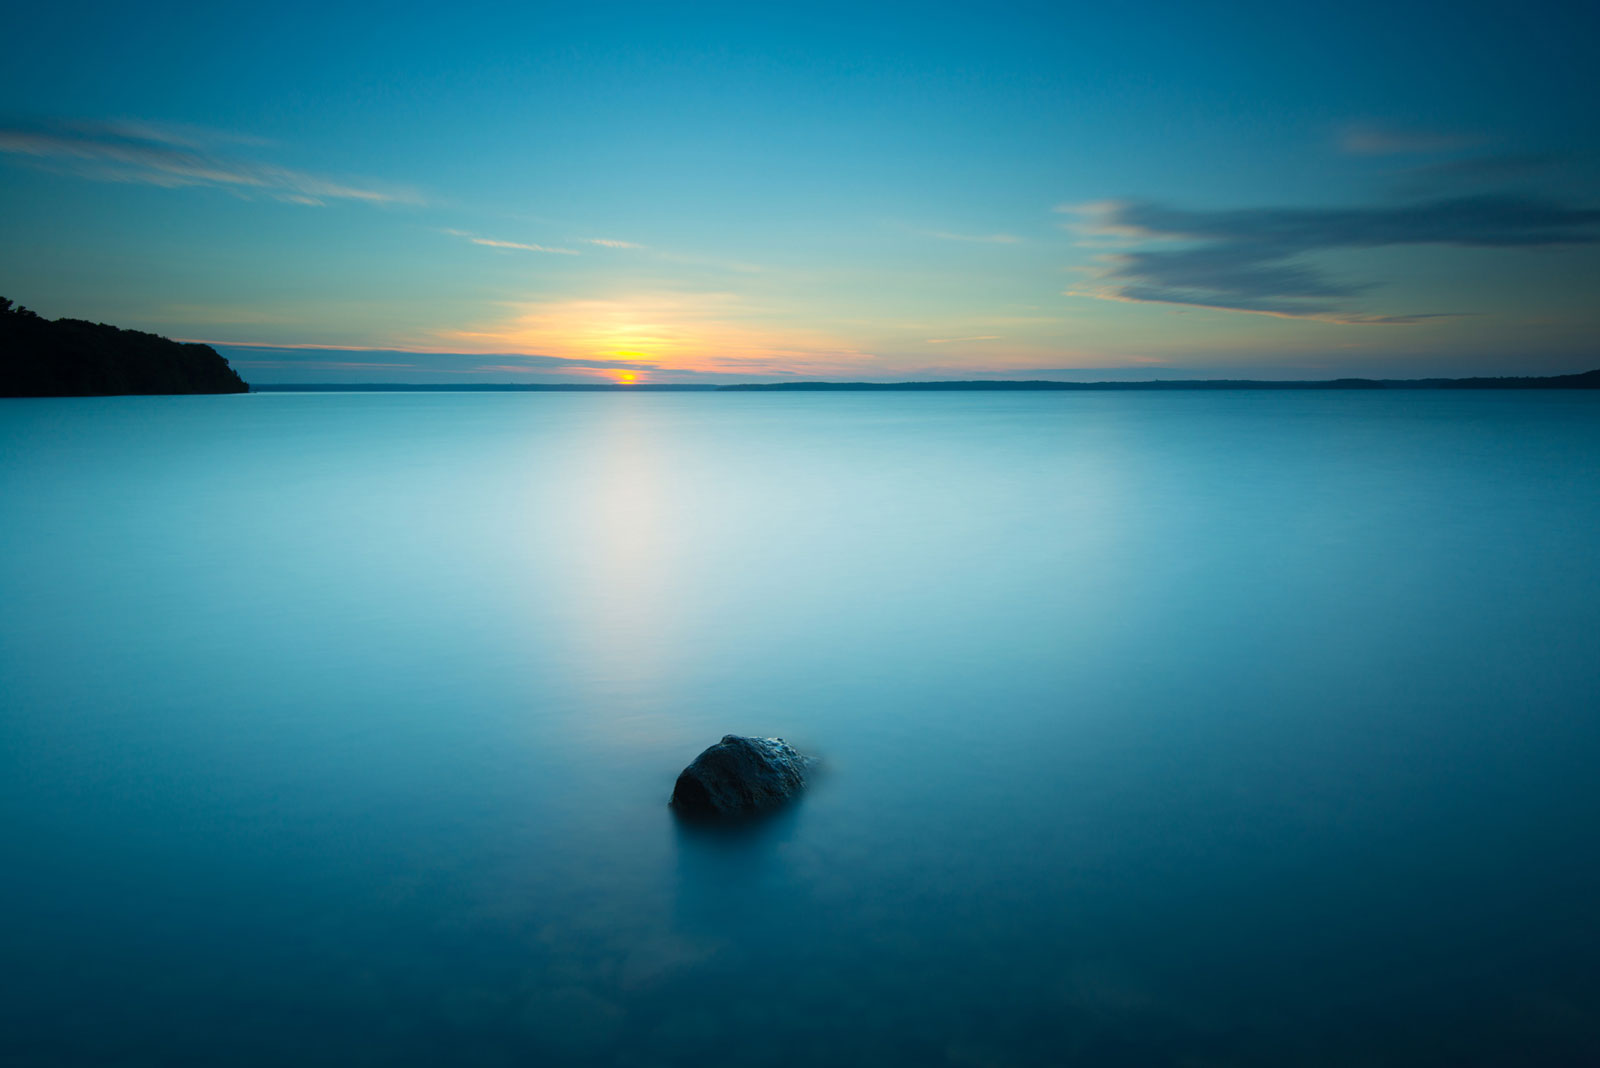 lone rock georgian bay ontario sunrise landscape photography